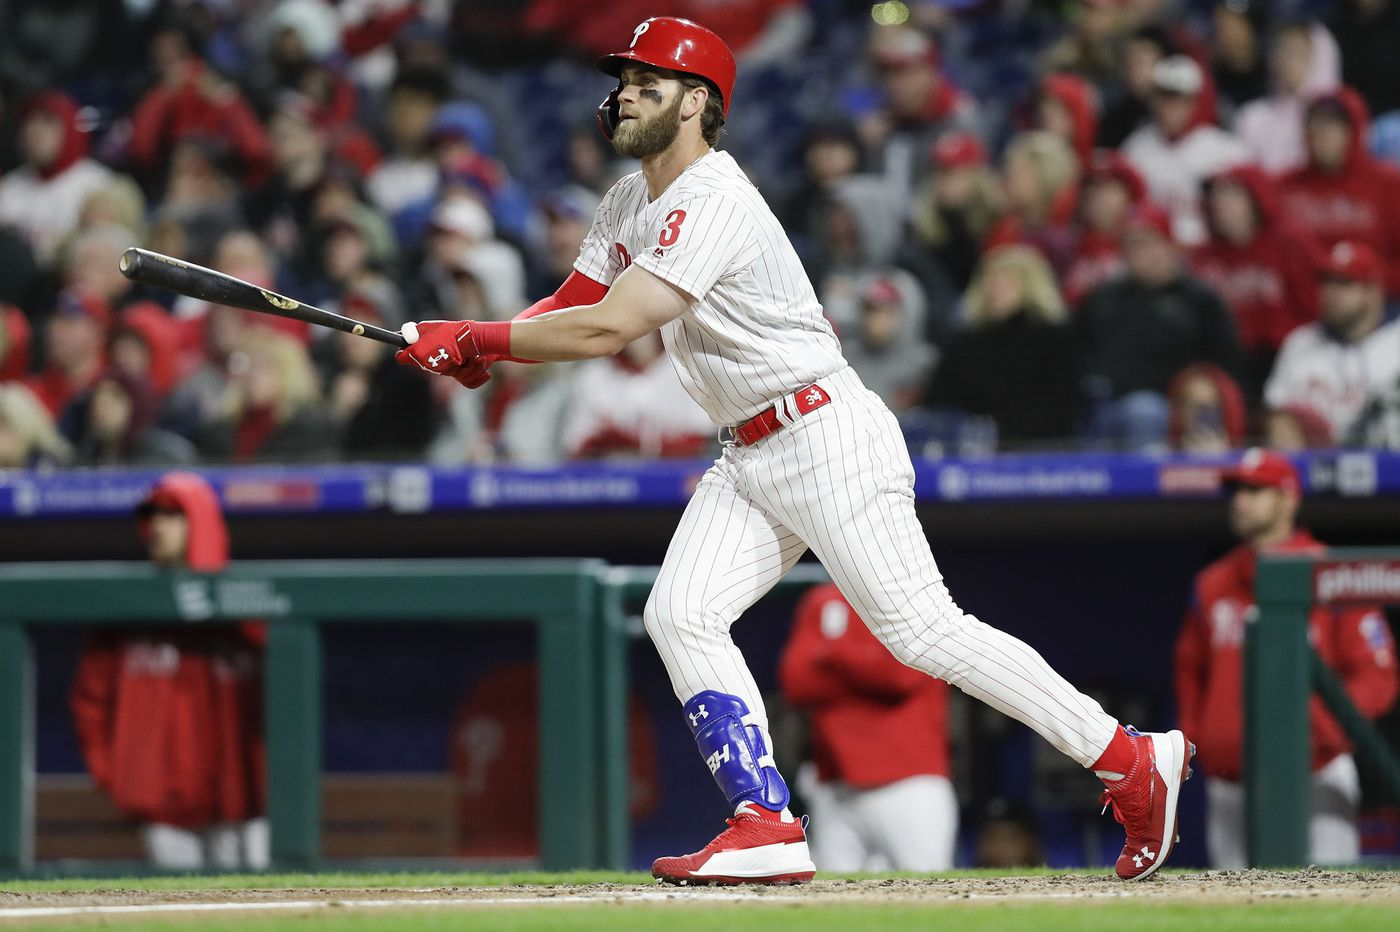 With Max Scherzer going Tuesday, here's how Bryce Harper has fared against baseball's best pitchers